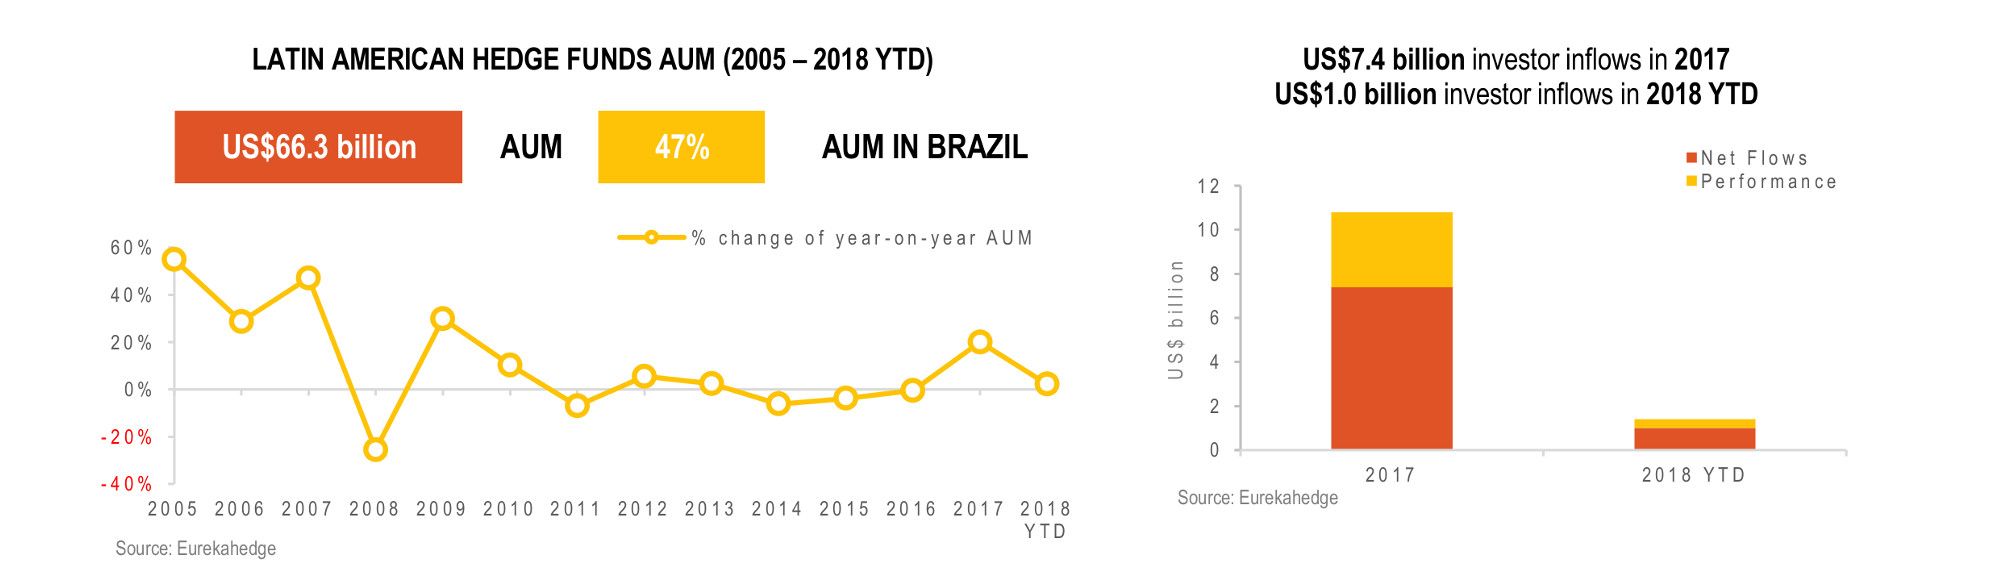 Latin American Hedge Funds Infographic May 2018 - AUM